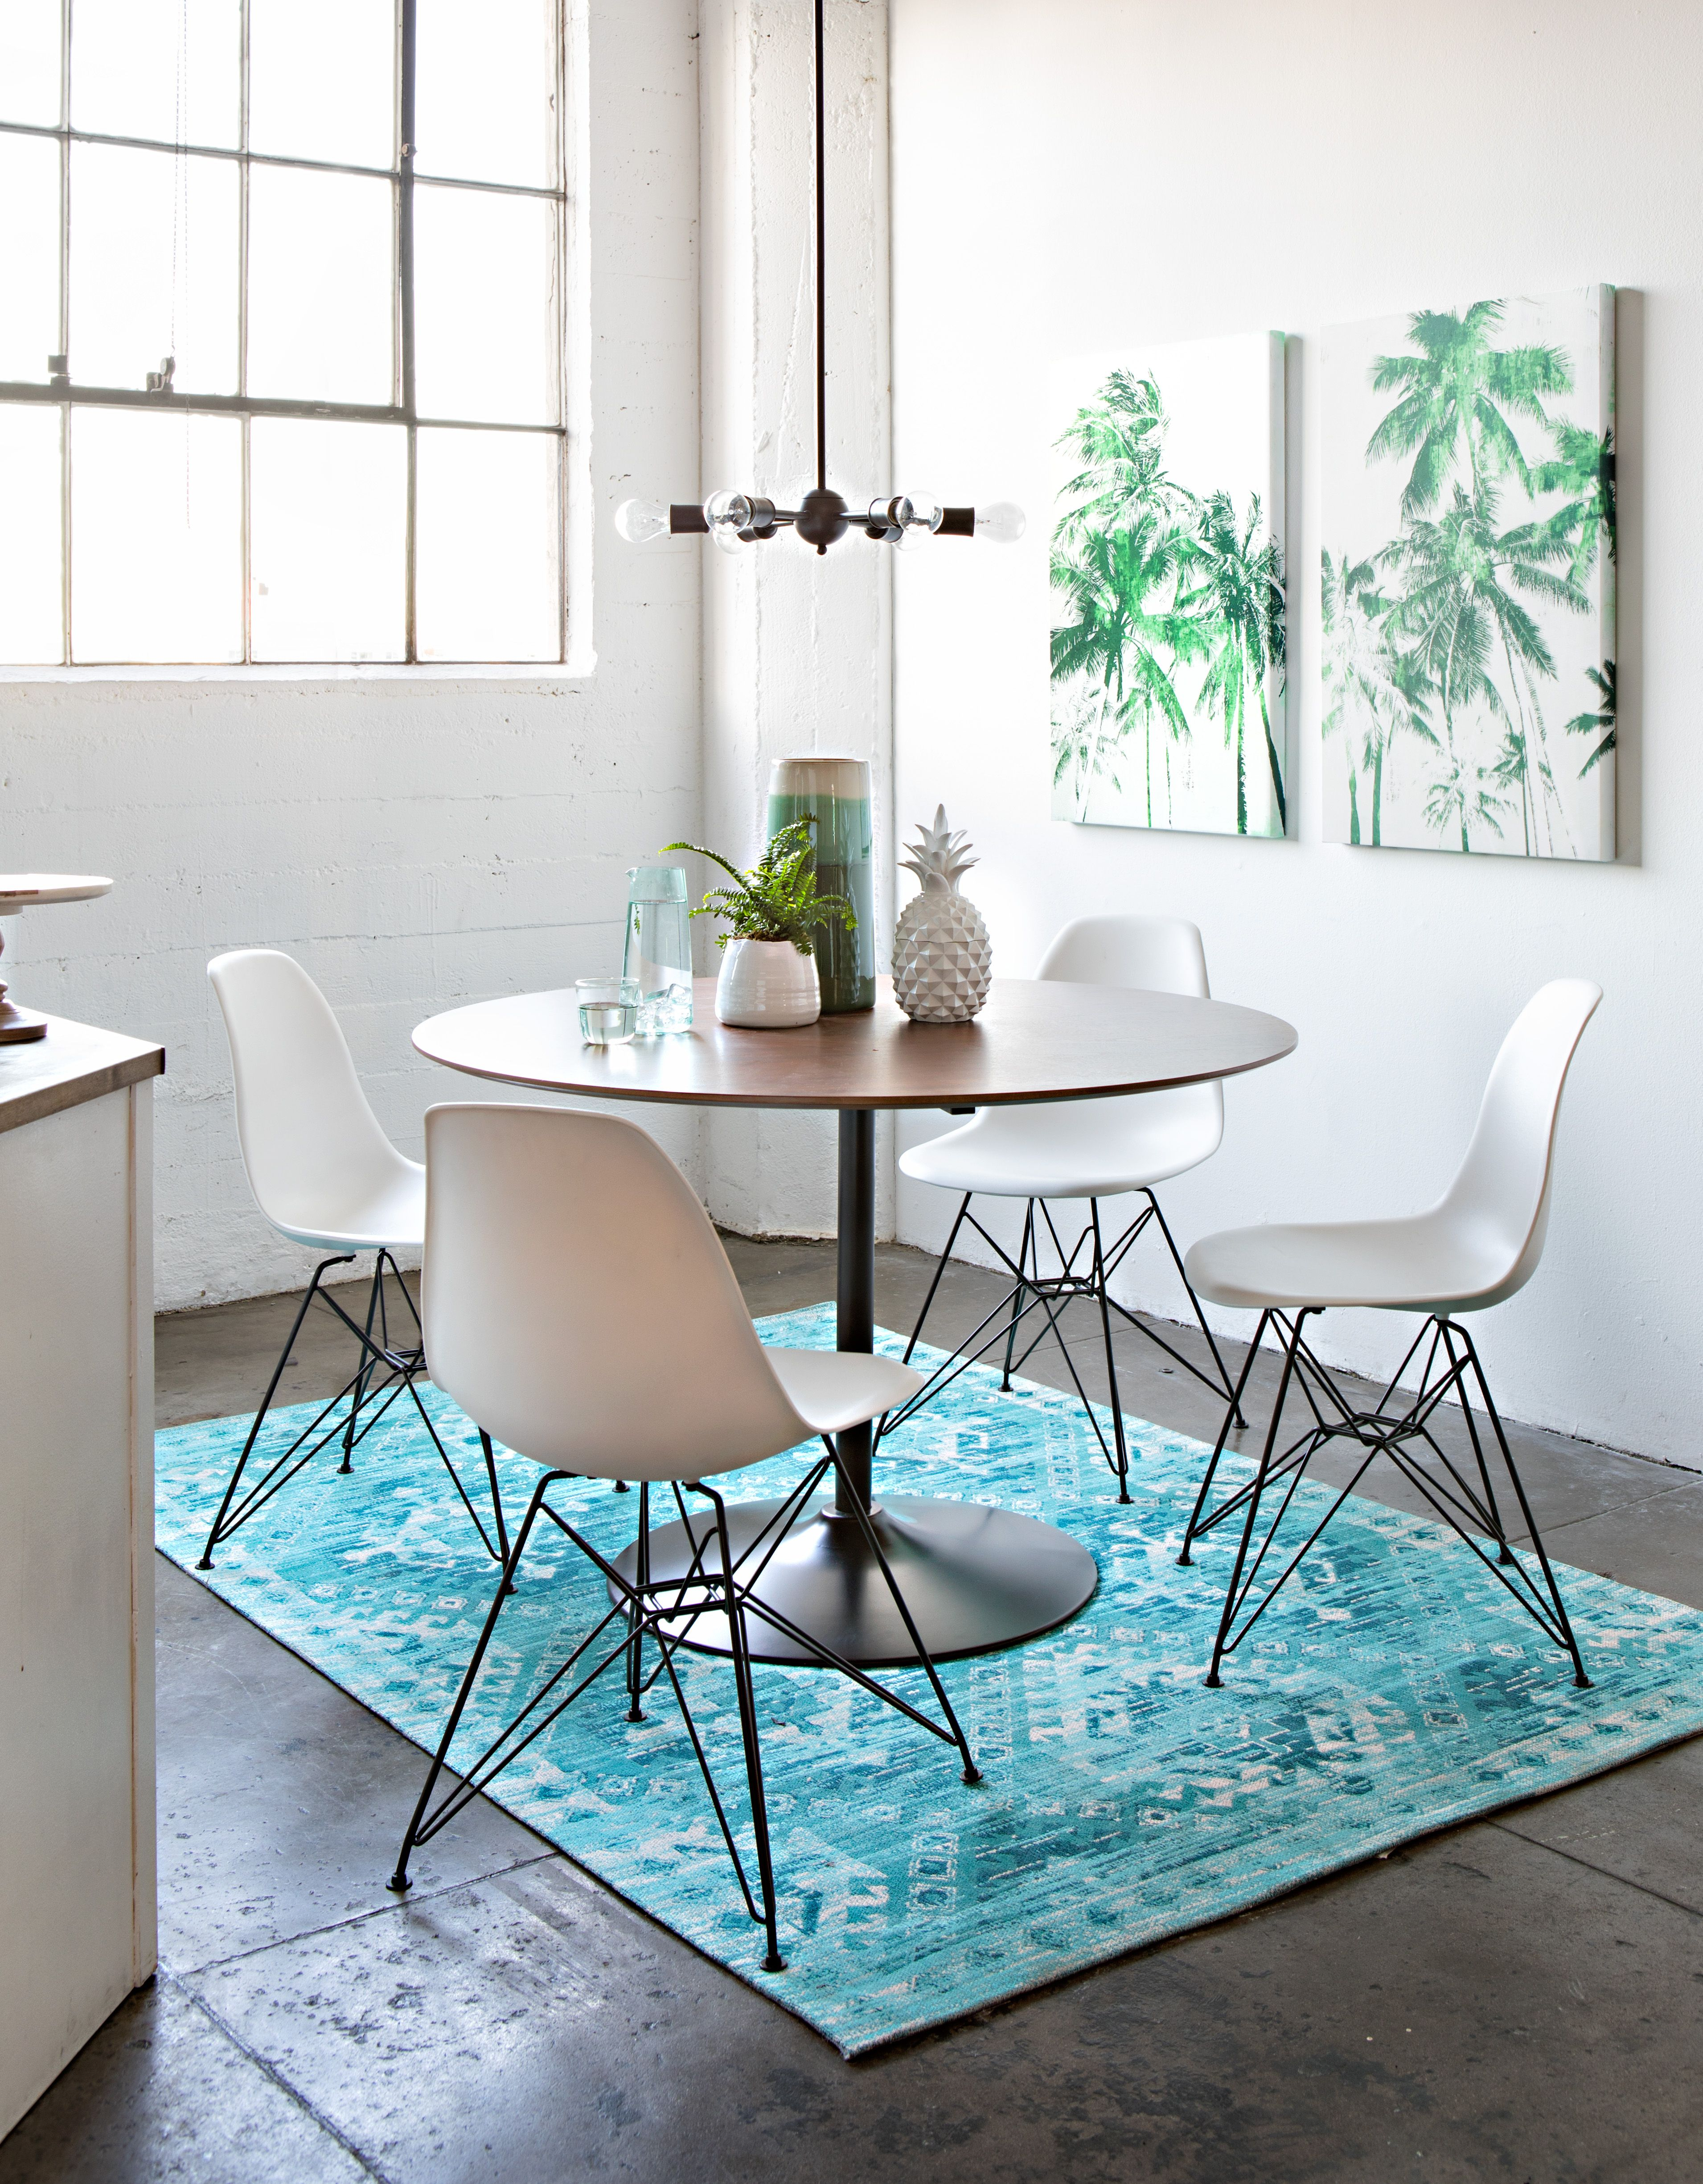 Loft Spaces Vespa 5 Piece Dining Set Every Meal Is Easy And